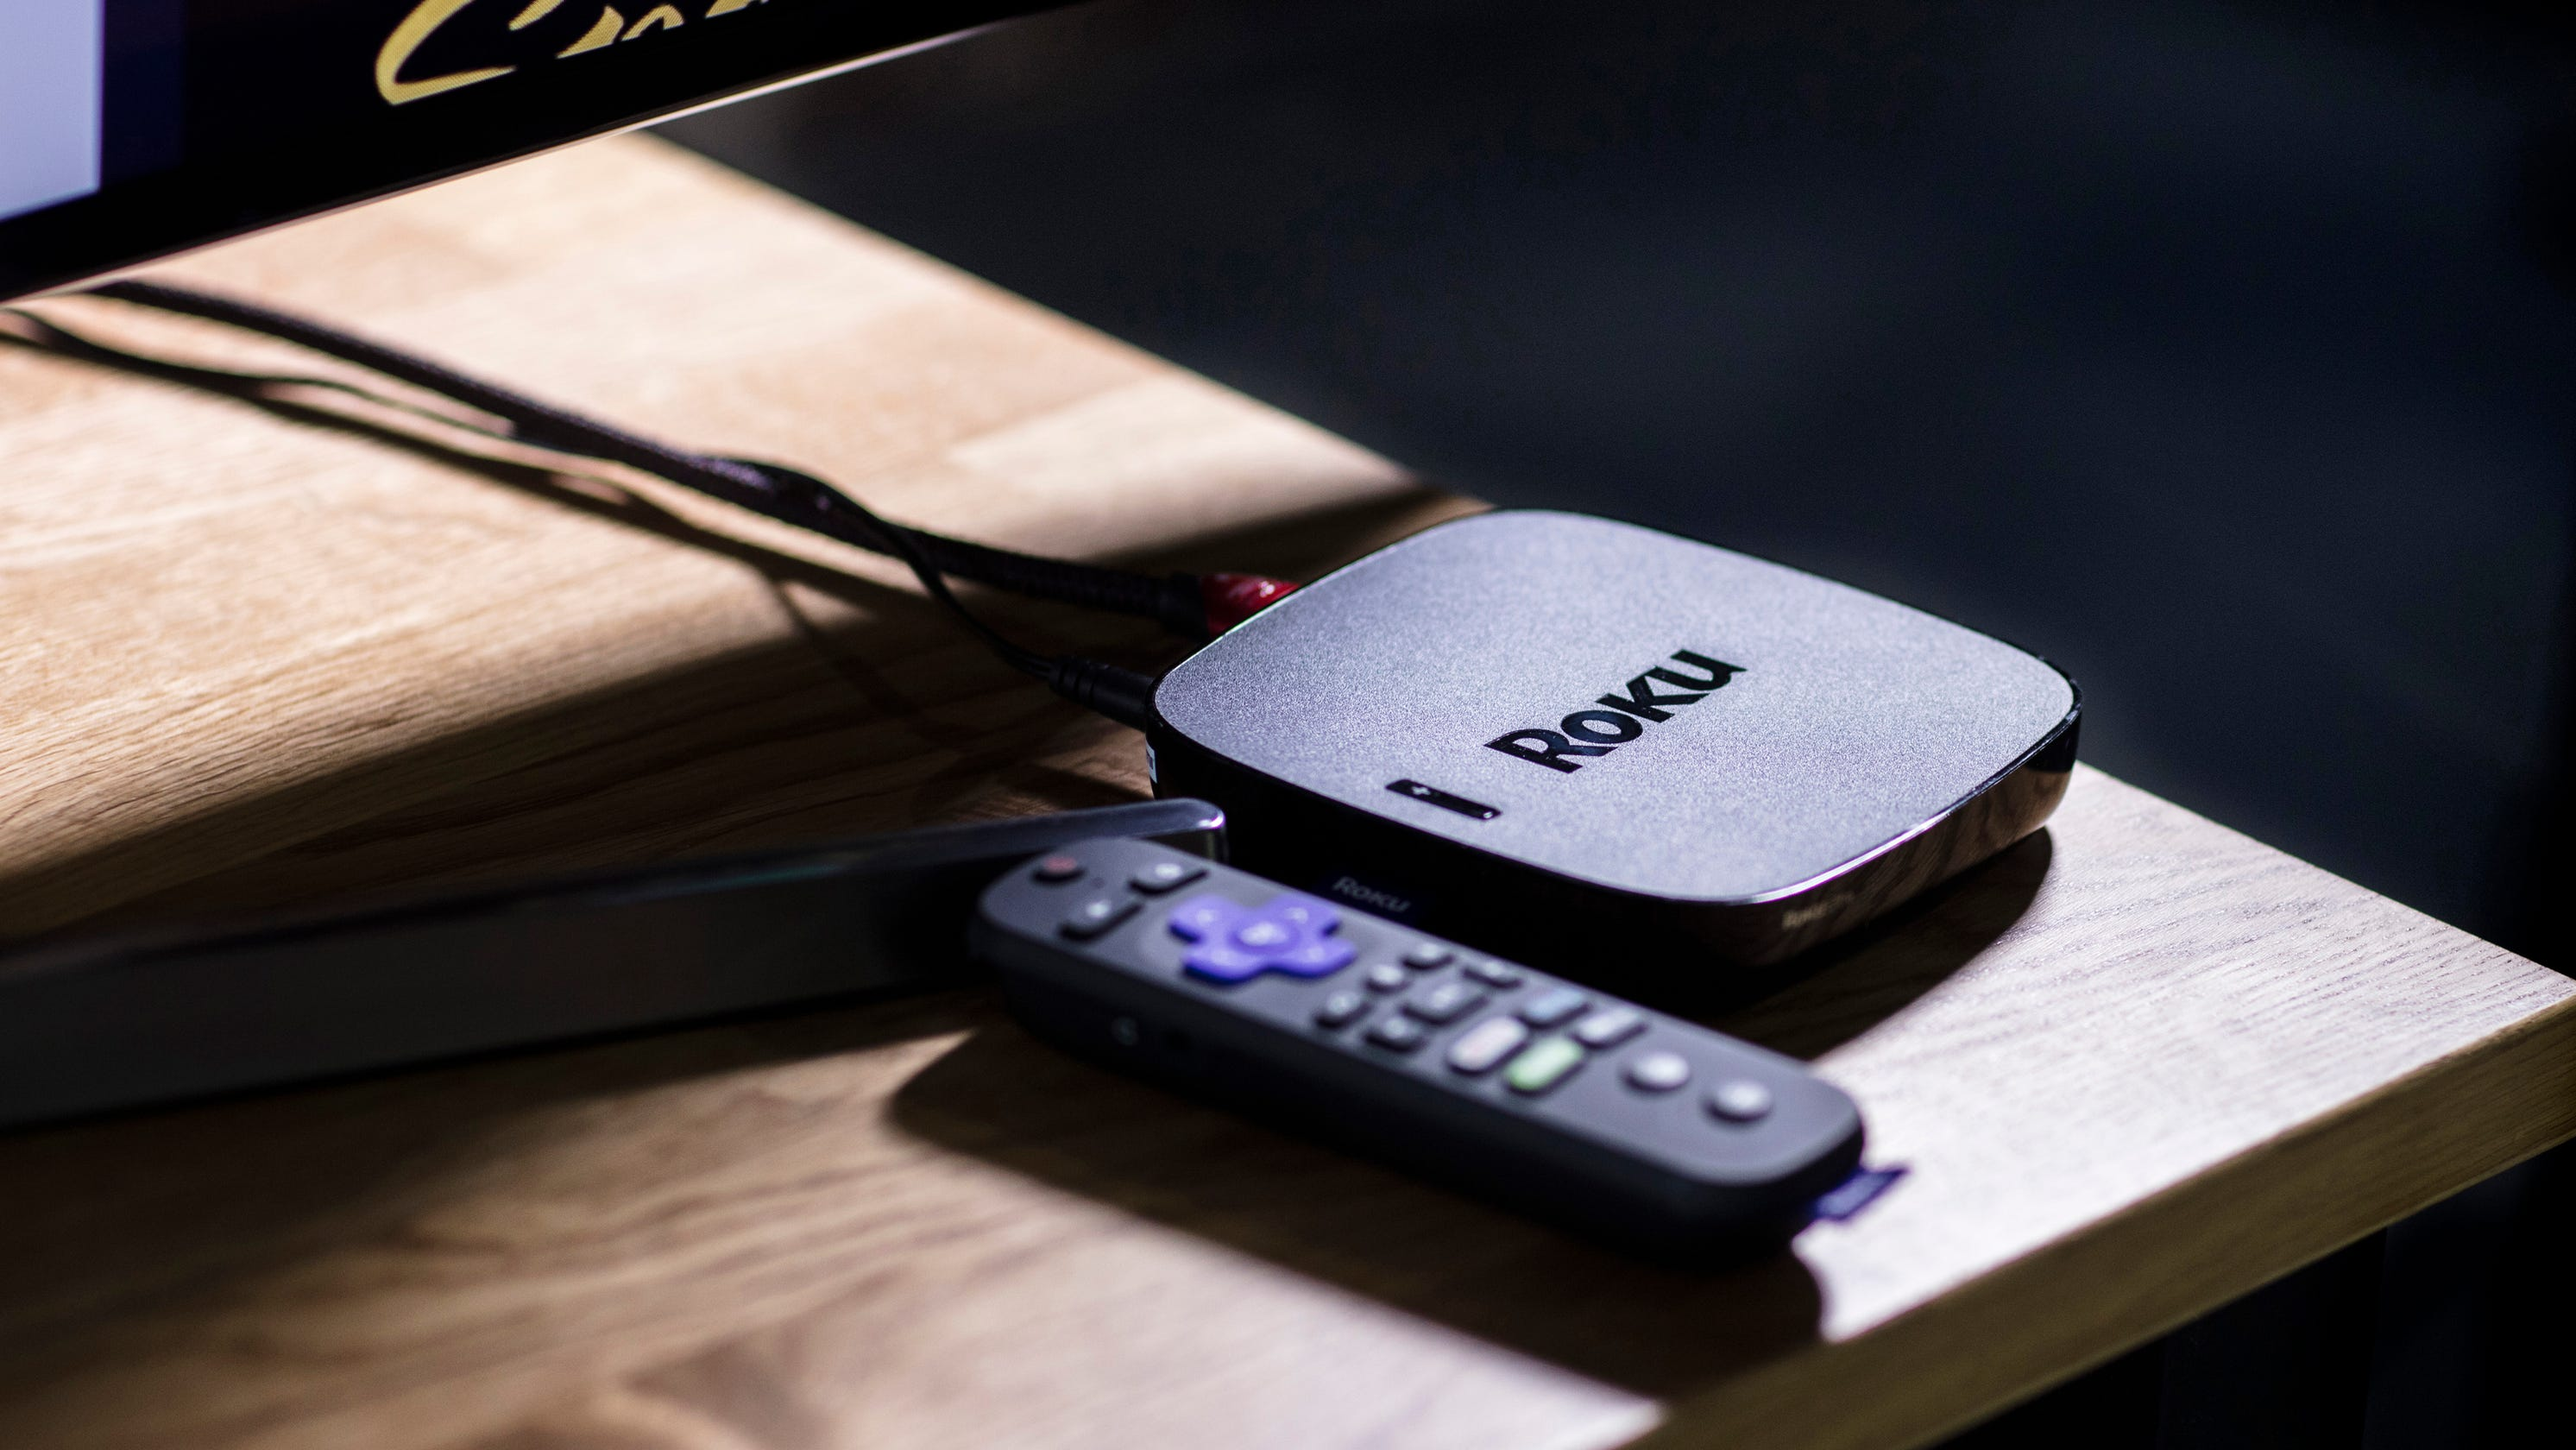 Cyber Monday 2020: The 10 best deals you can get right now on Roku, Hulu, Staub, KitchenAid and more